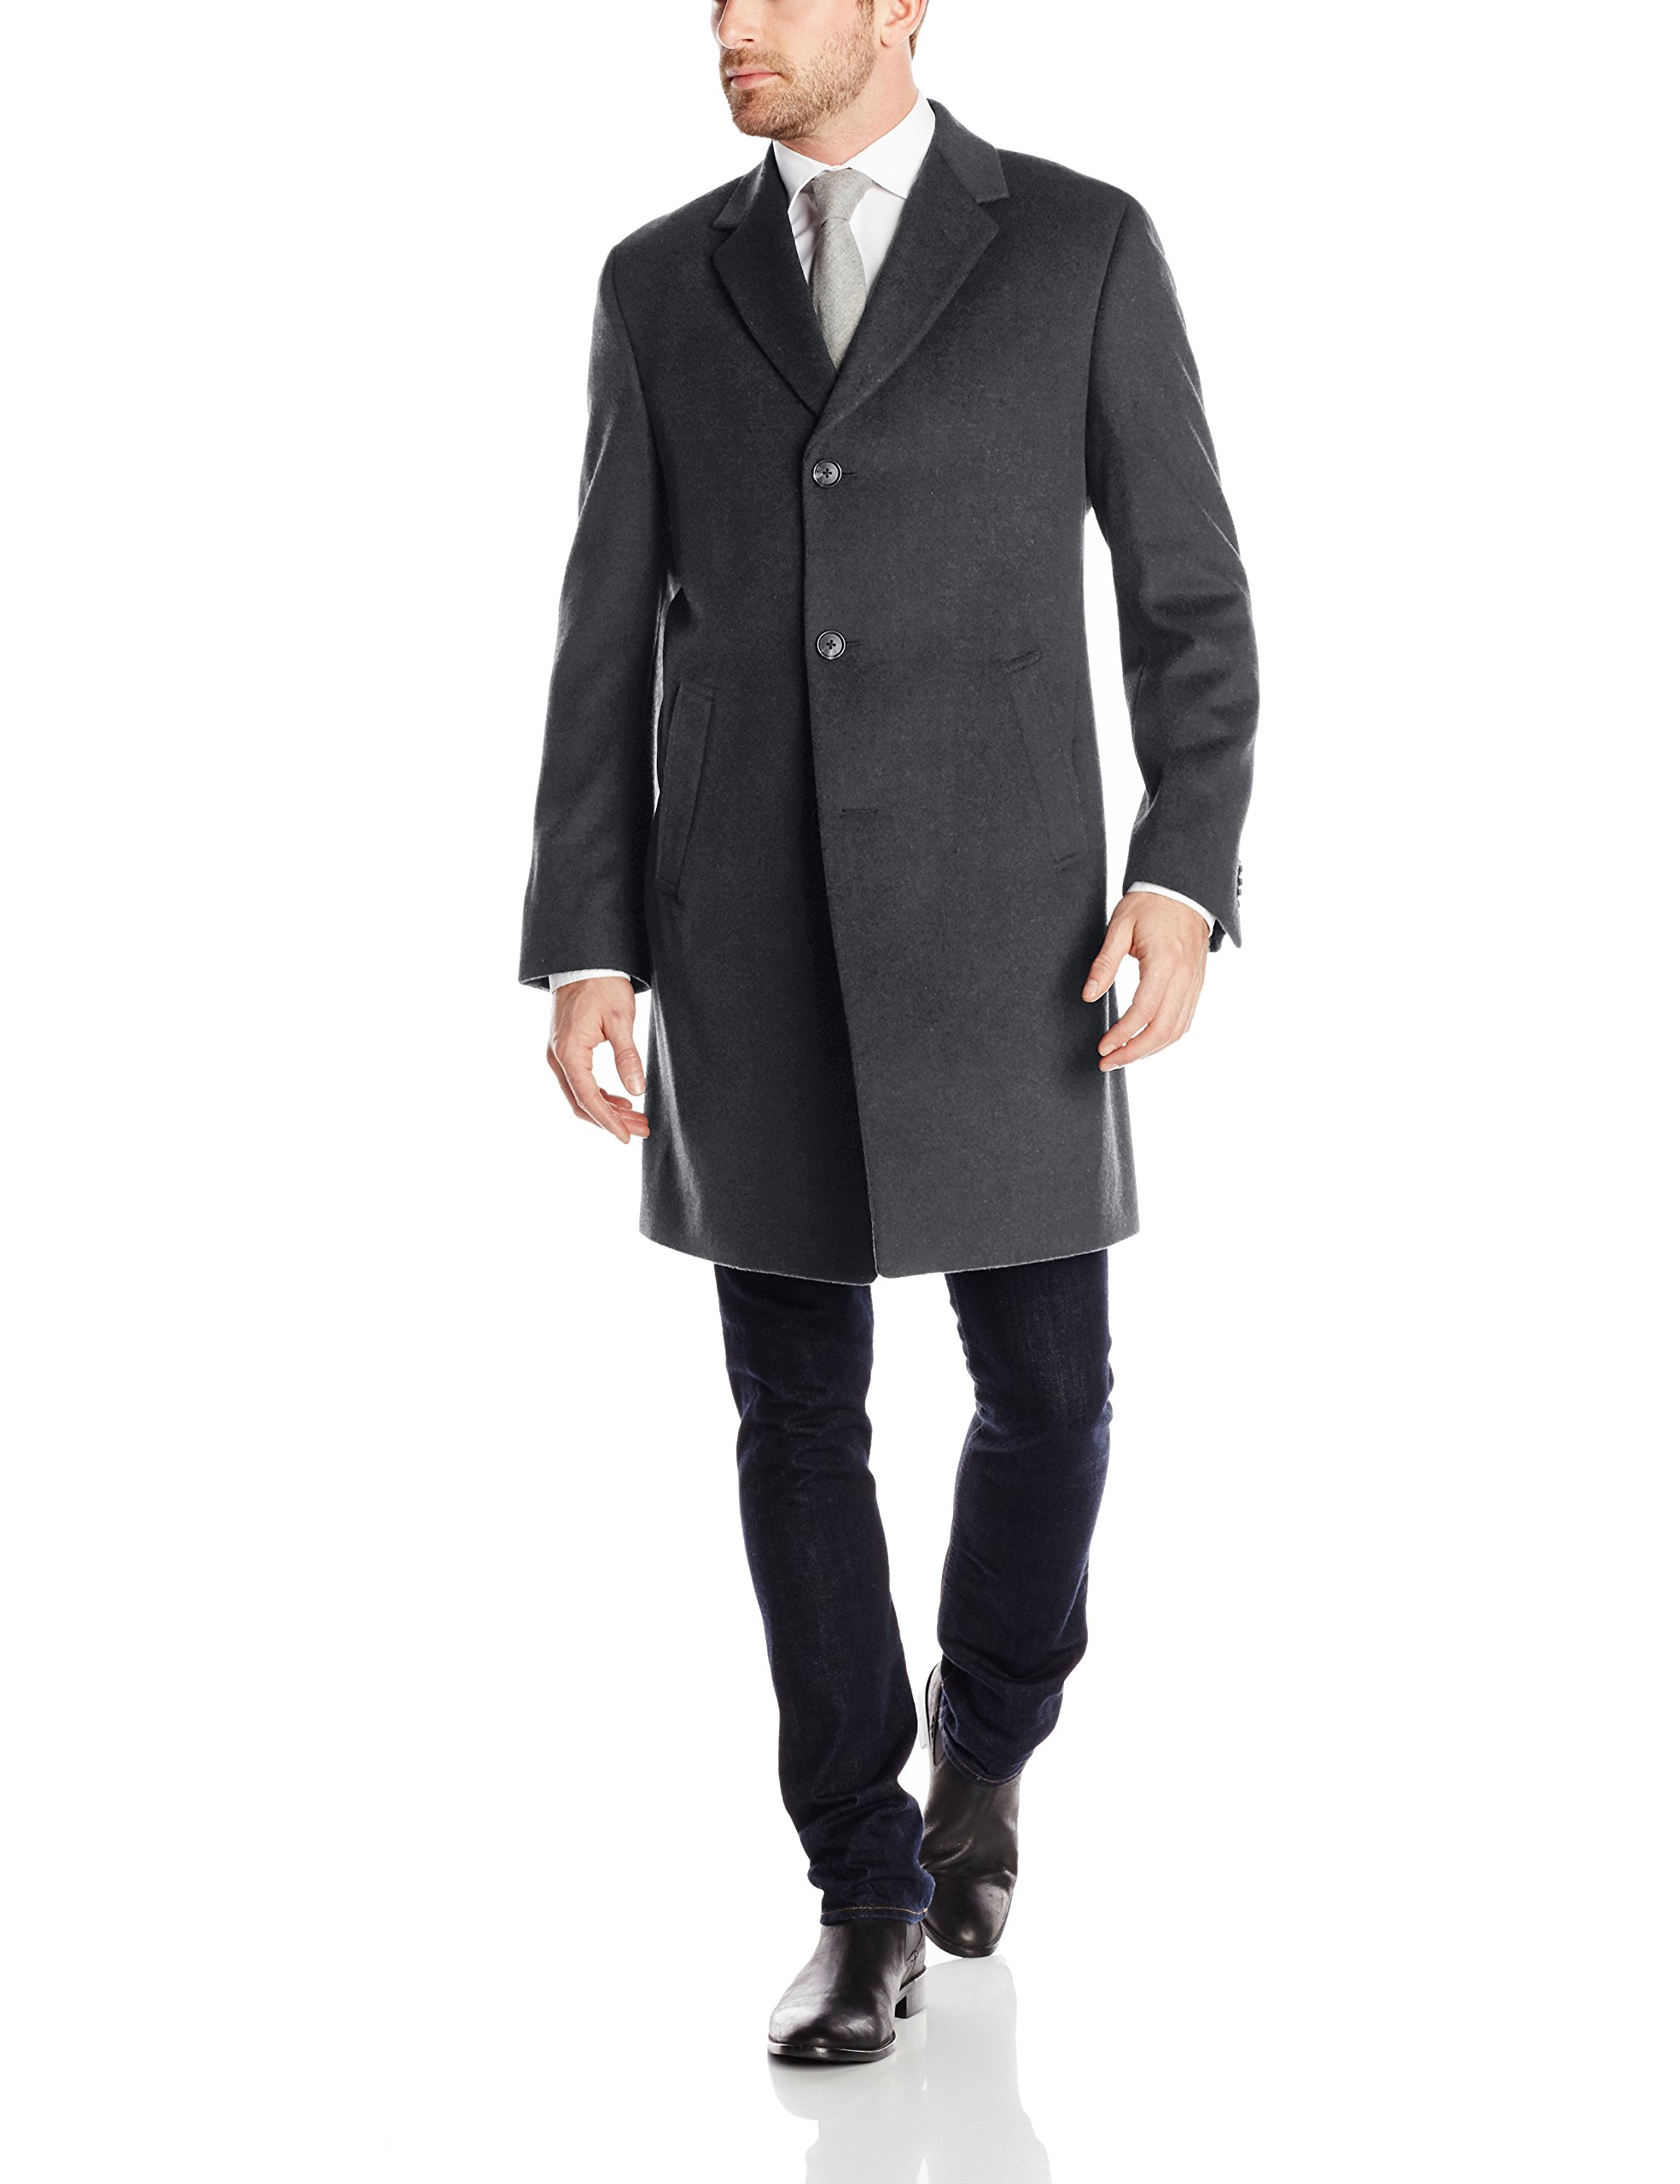 Kenneth Cole REACTION Men's Raburn Wool Top Coat, Charcoal, 46 Regular by Kenneth Cole REACTION